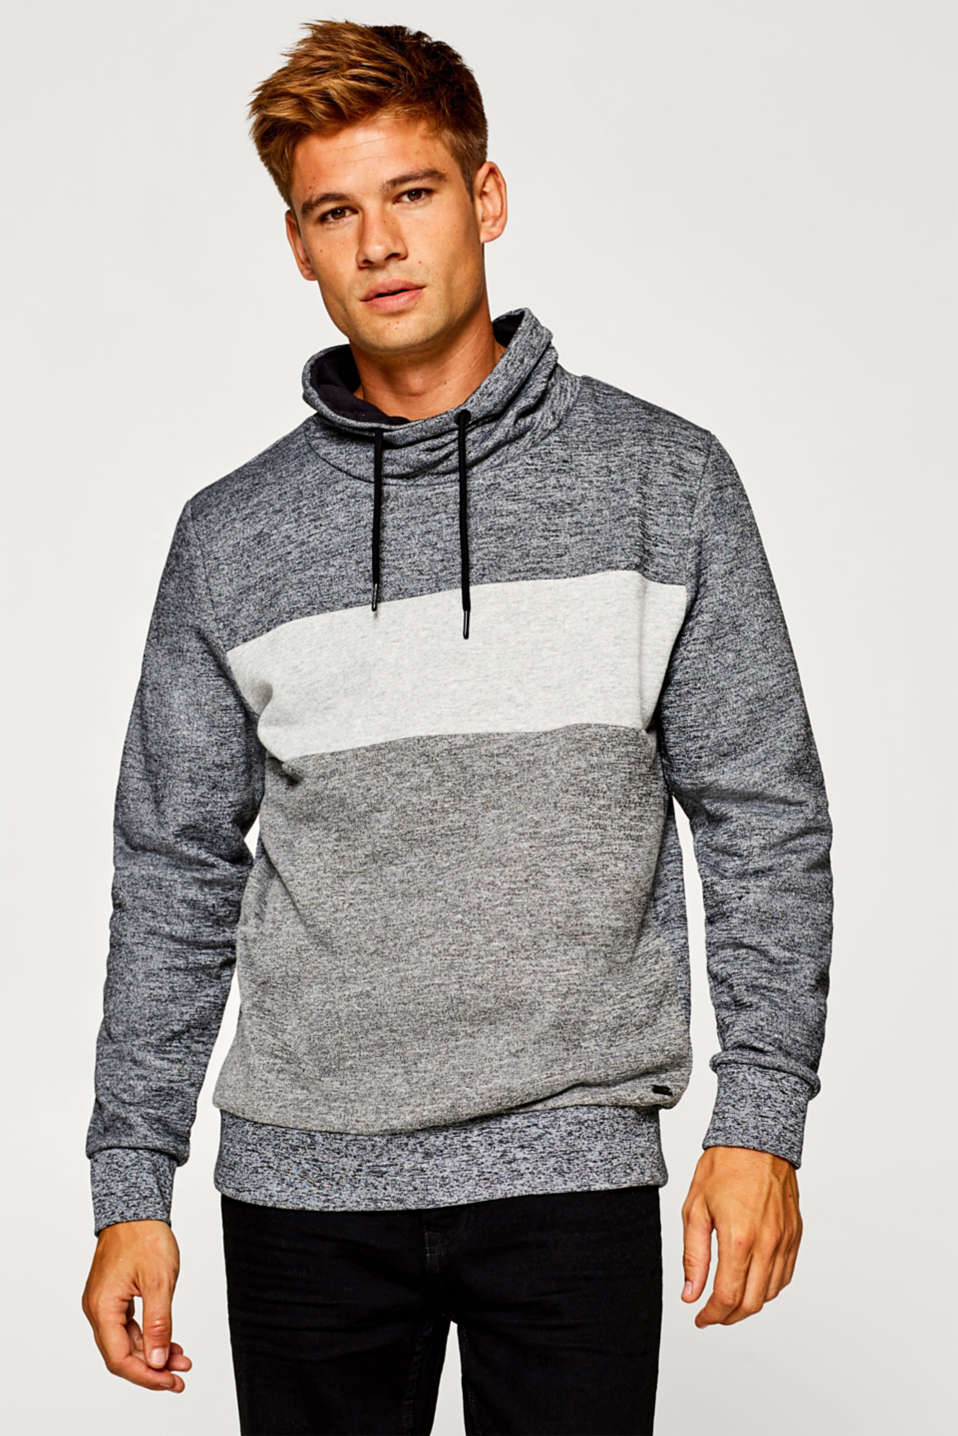 edc - Colour block sweatshirt in blended cotton